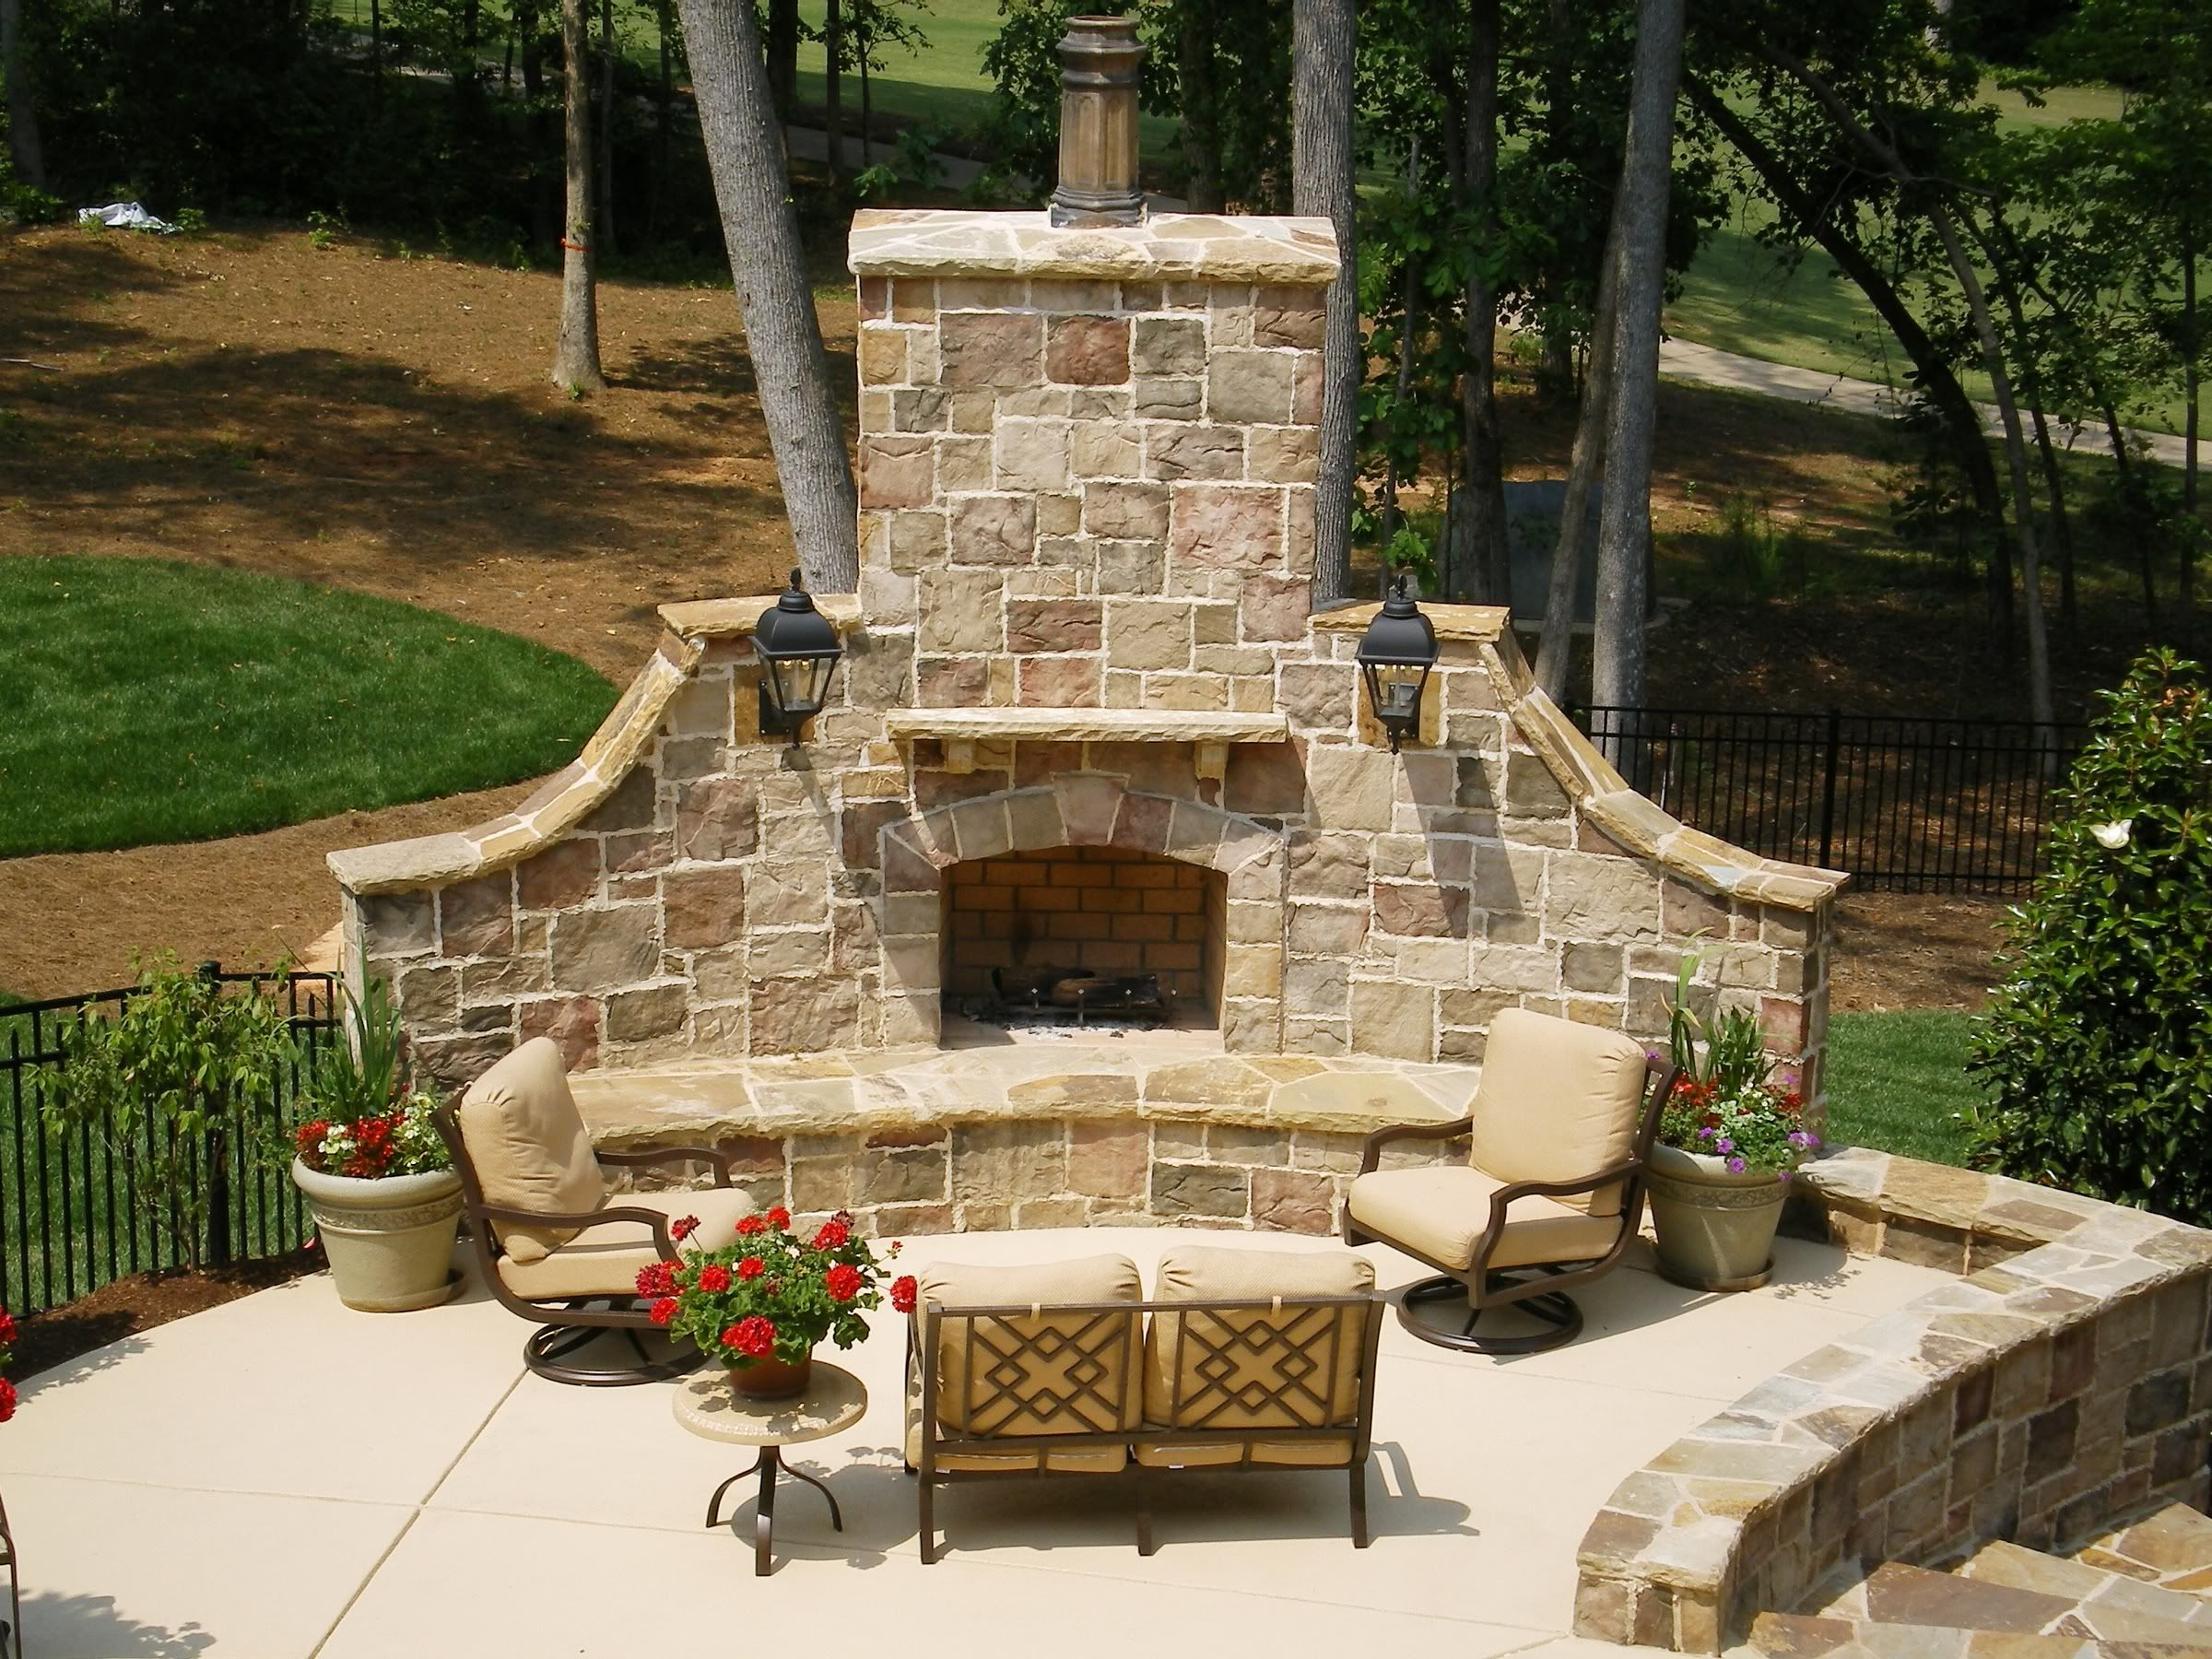 Backyard Fireplace Designs Backyard Fireplace For The Home Pinterest Backyard